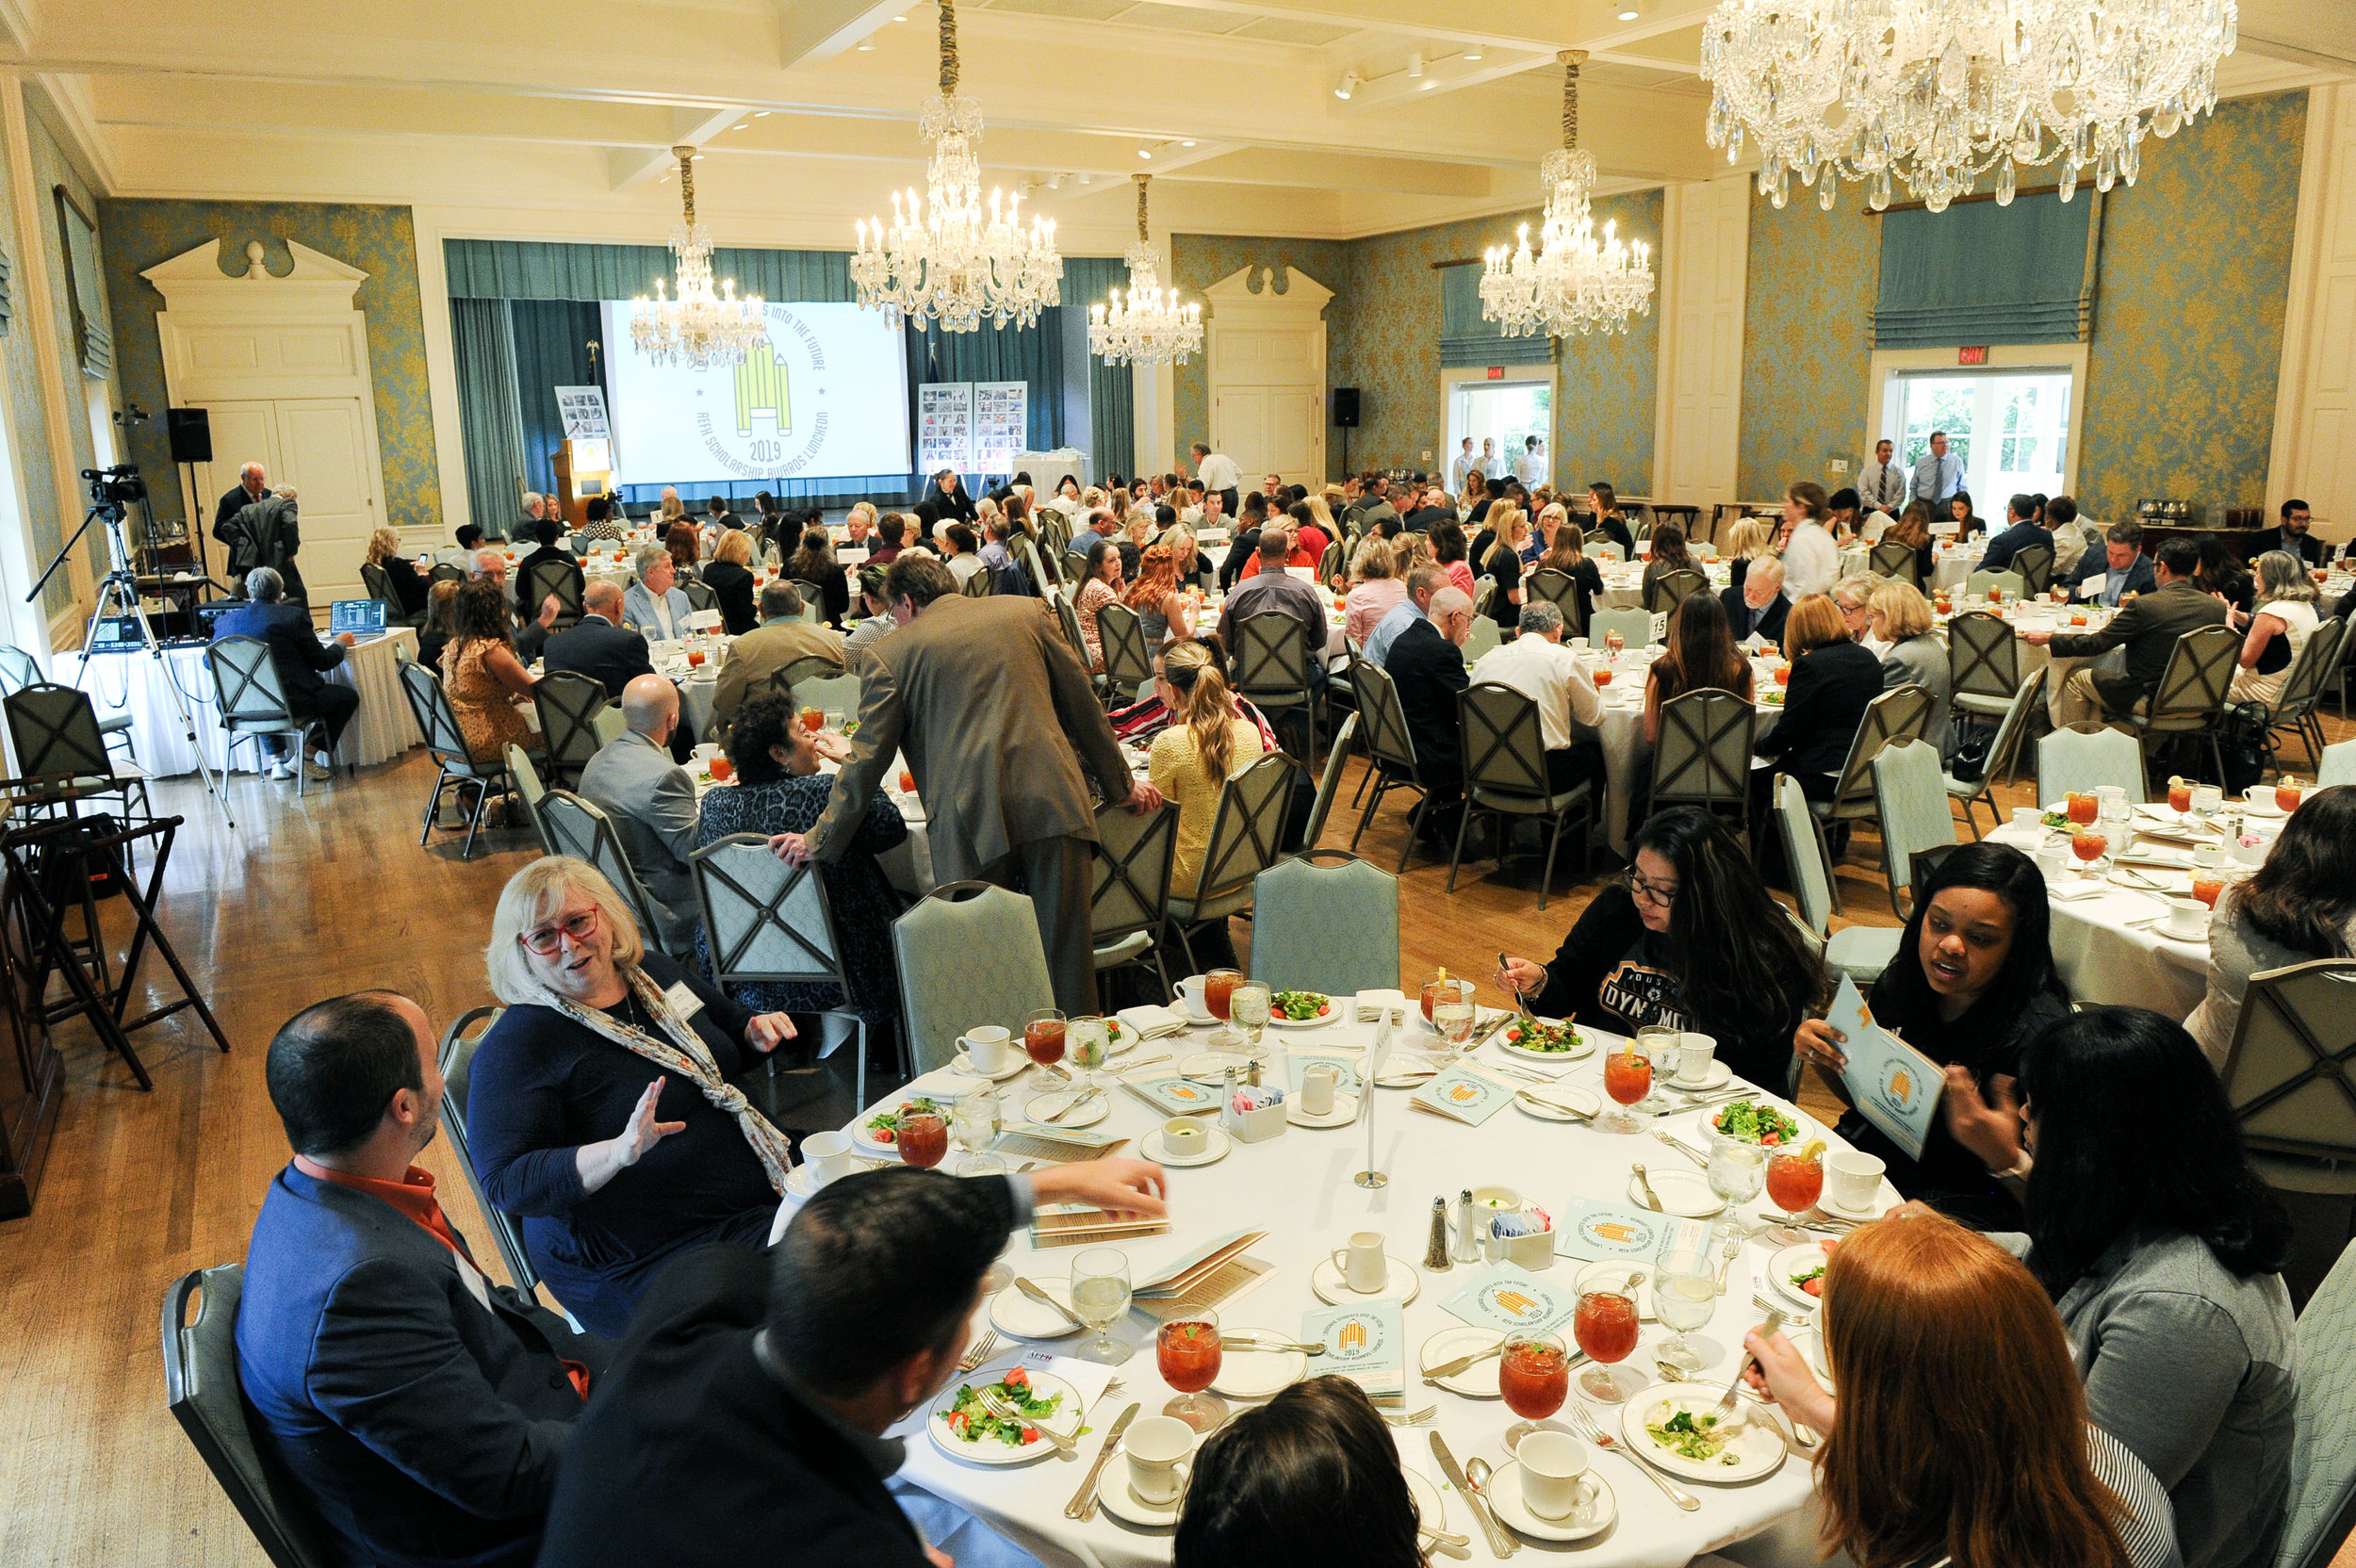 """2019 Scholarship Luncheon - Another successful year with 21 Scholarship Recipients and an inspiring speech from Jim """"Mattress Mack"""" McIngvale sharing his """"Ten Rules for a Successful Life""""."""